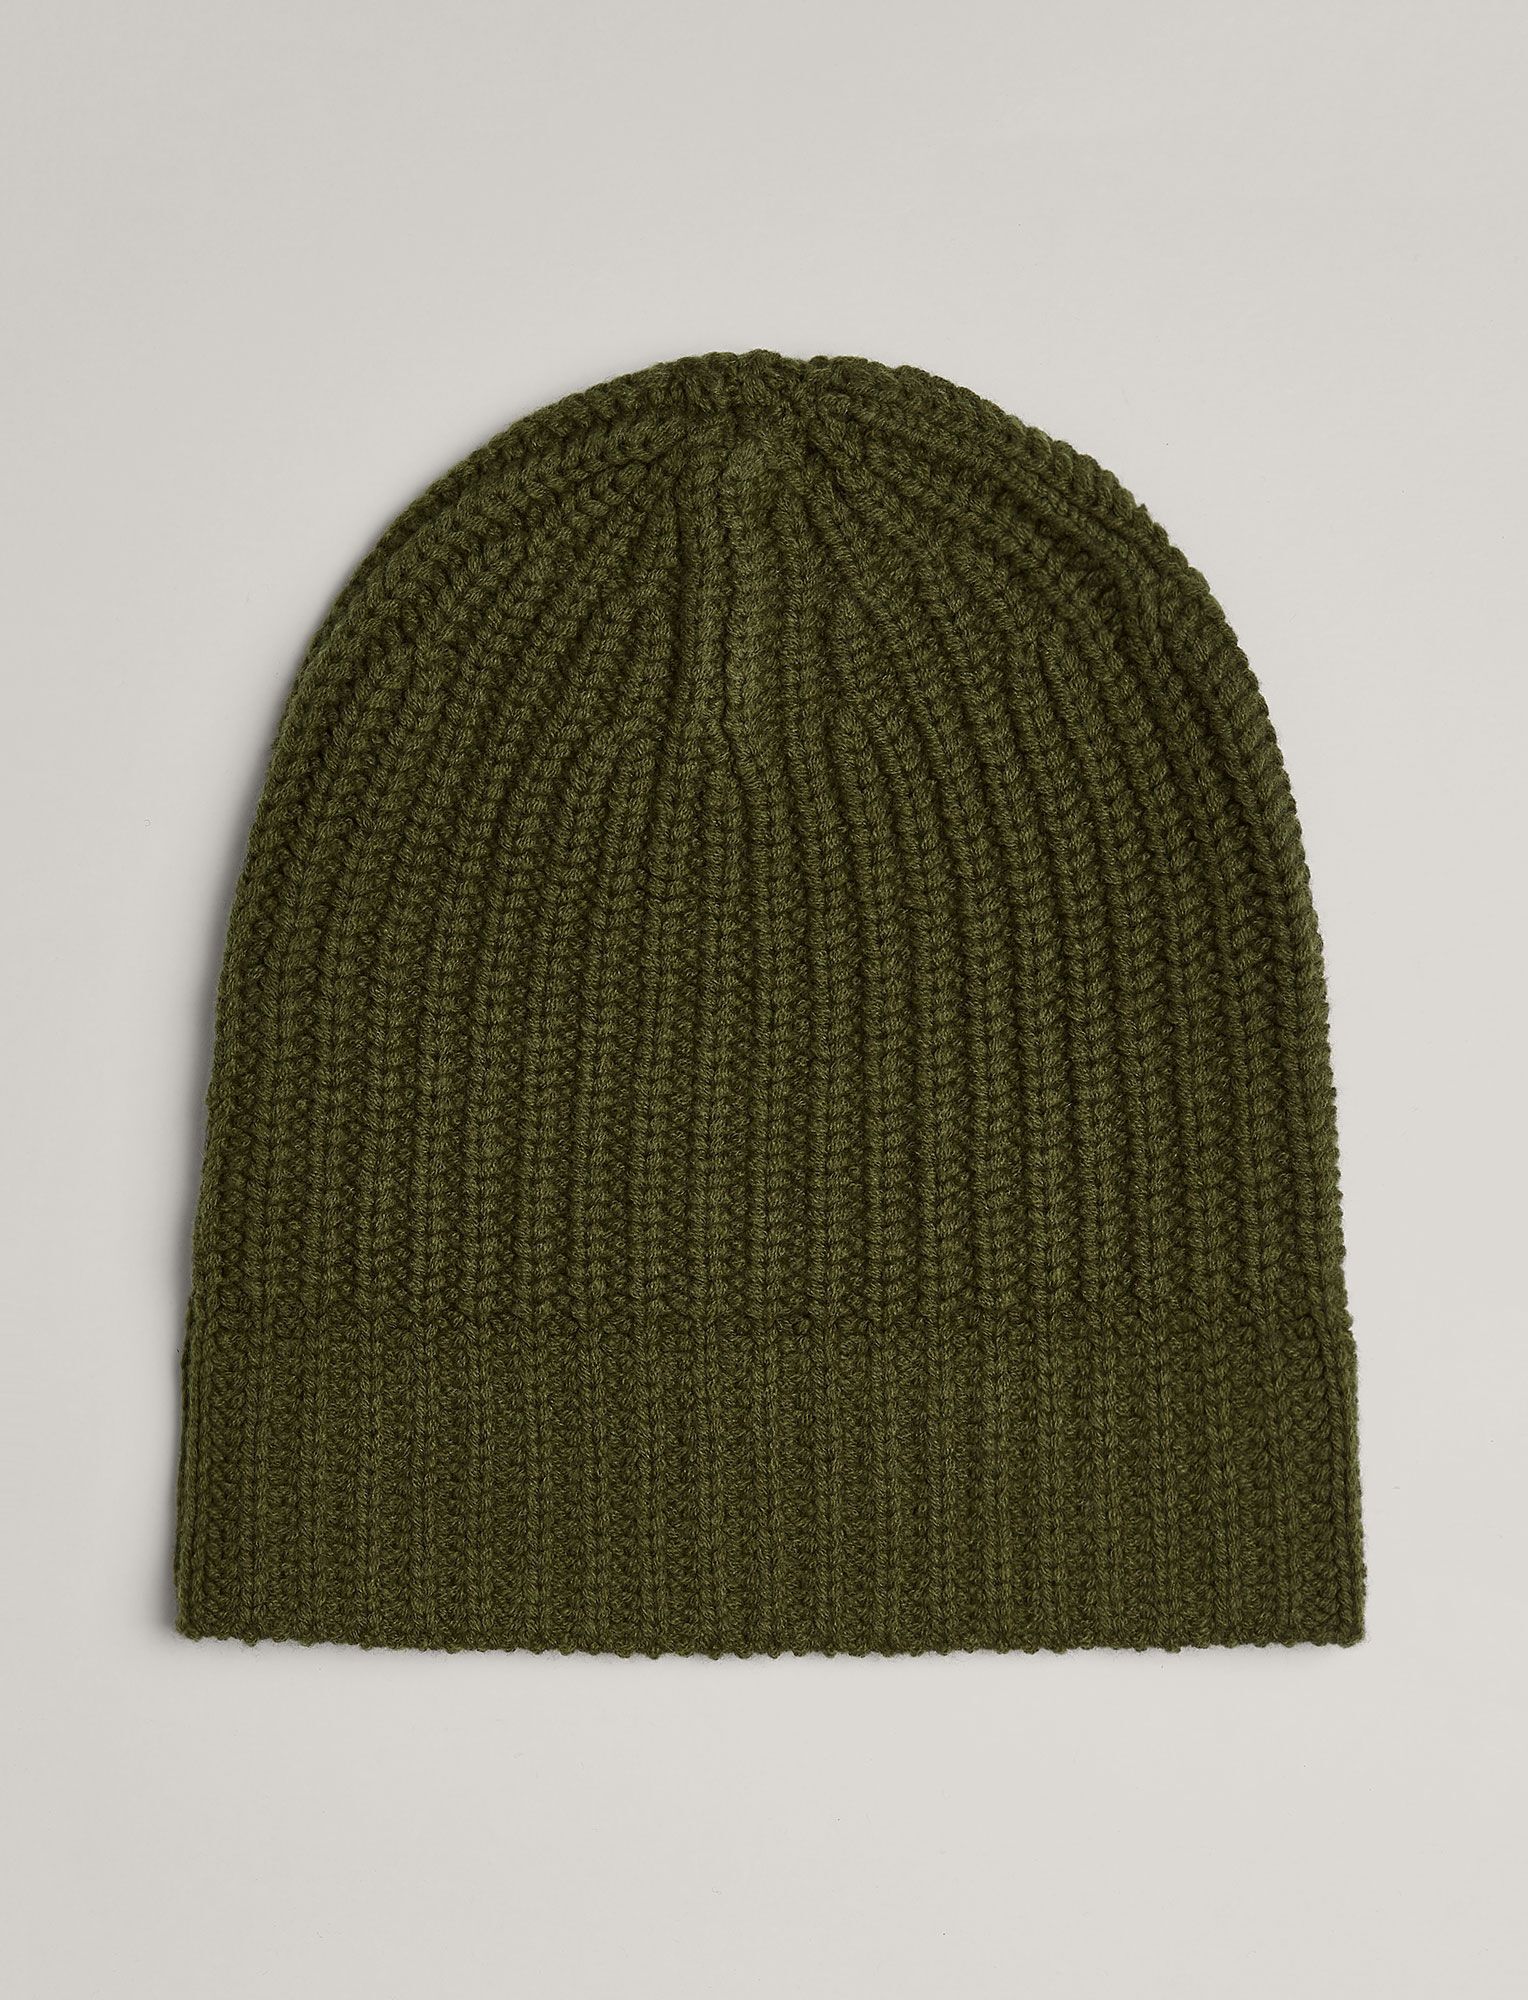 Soft Wool Beanie in Green  1b2846daca4